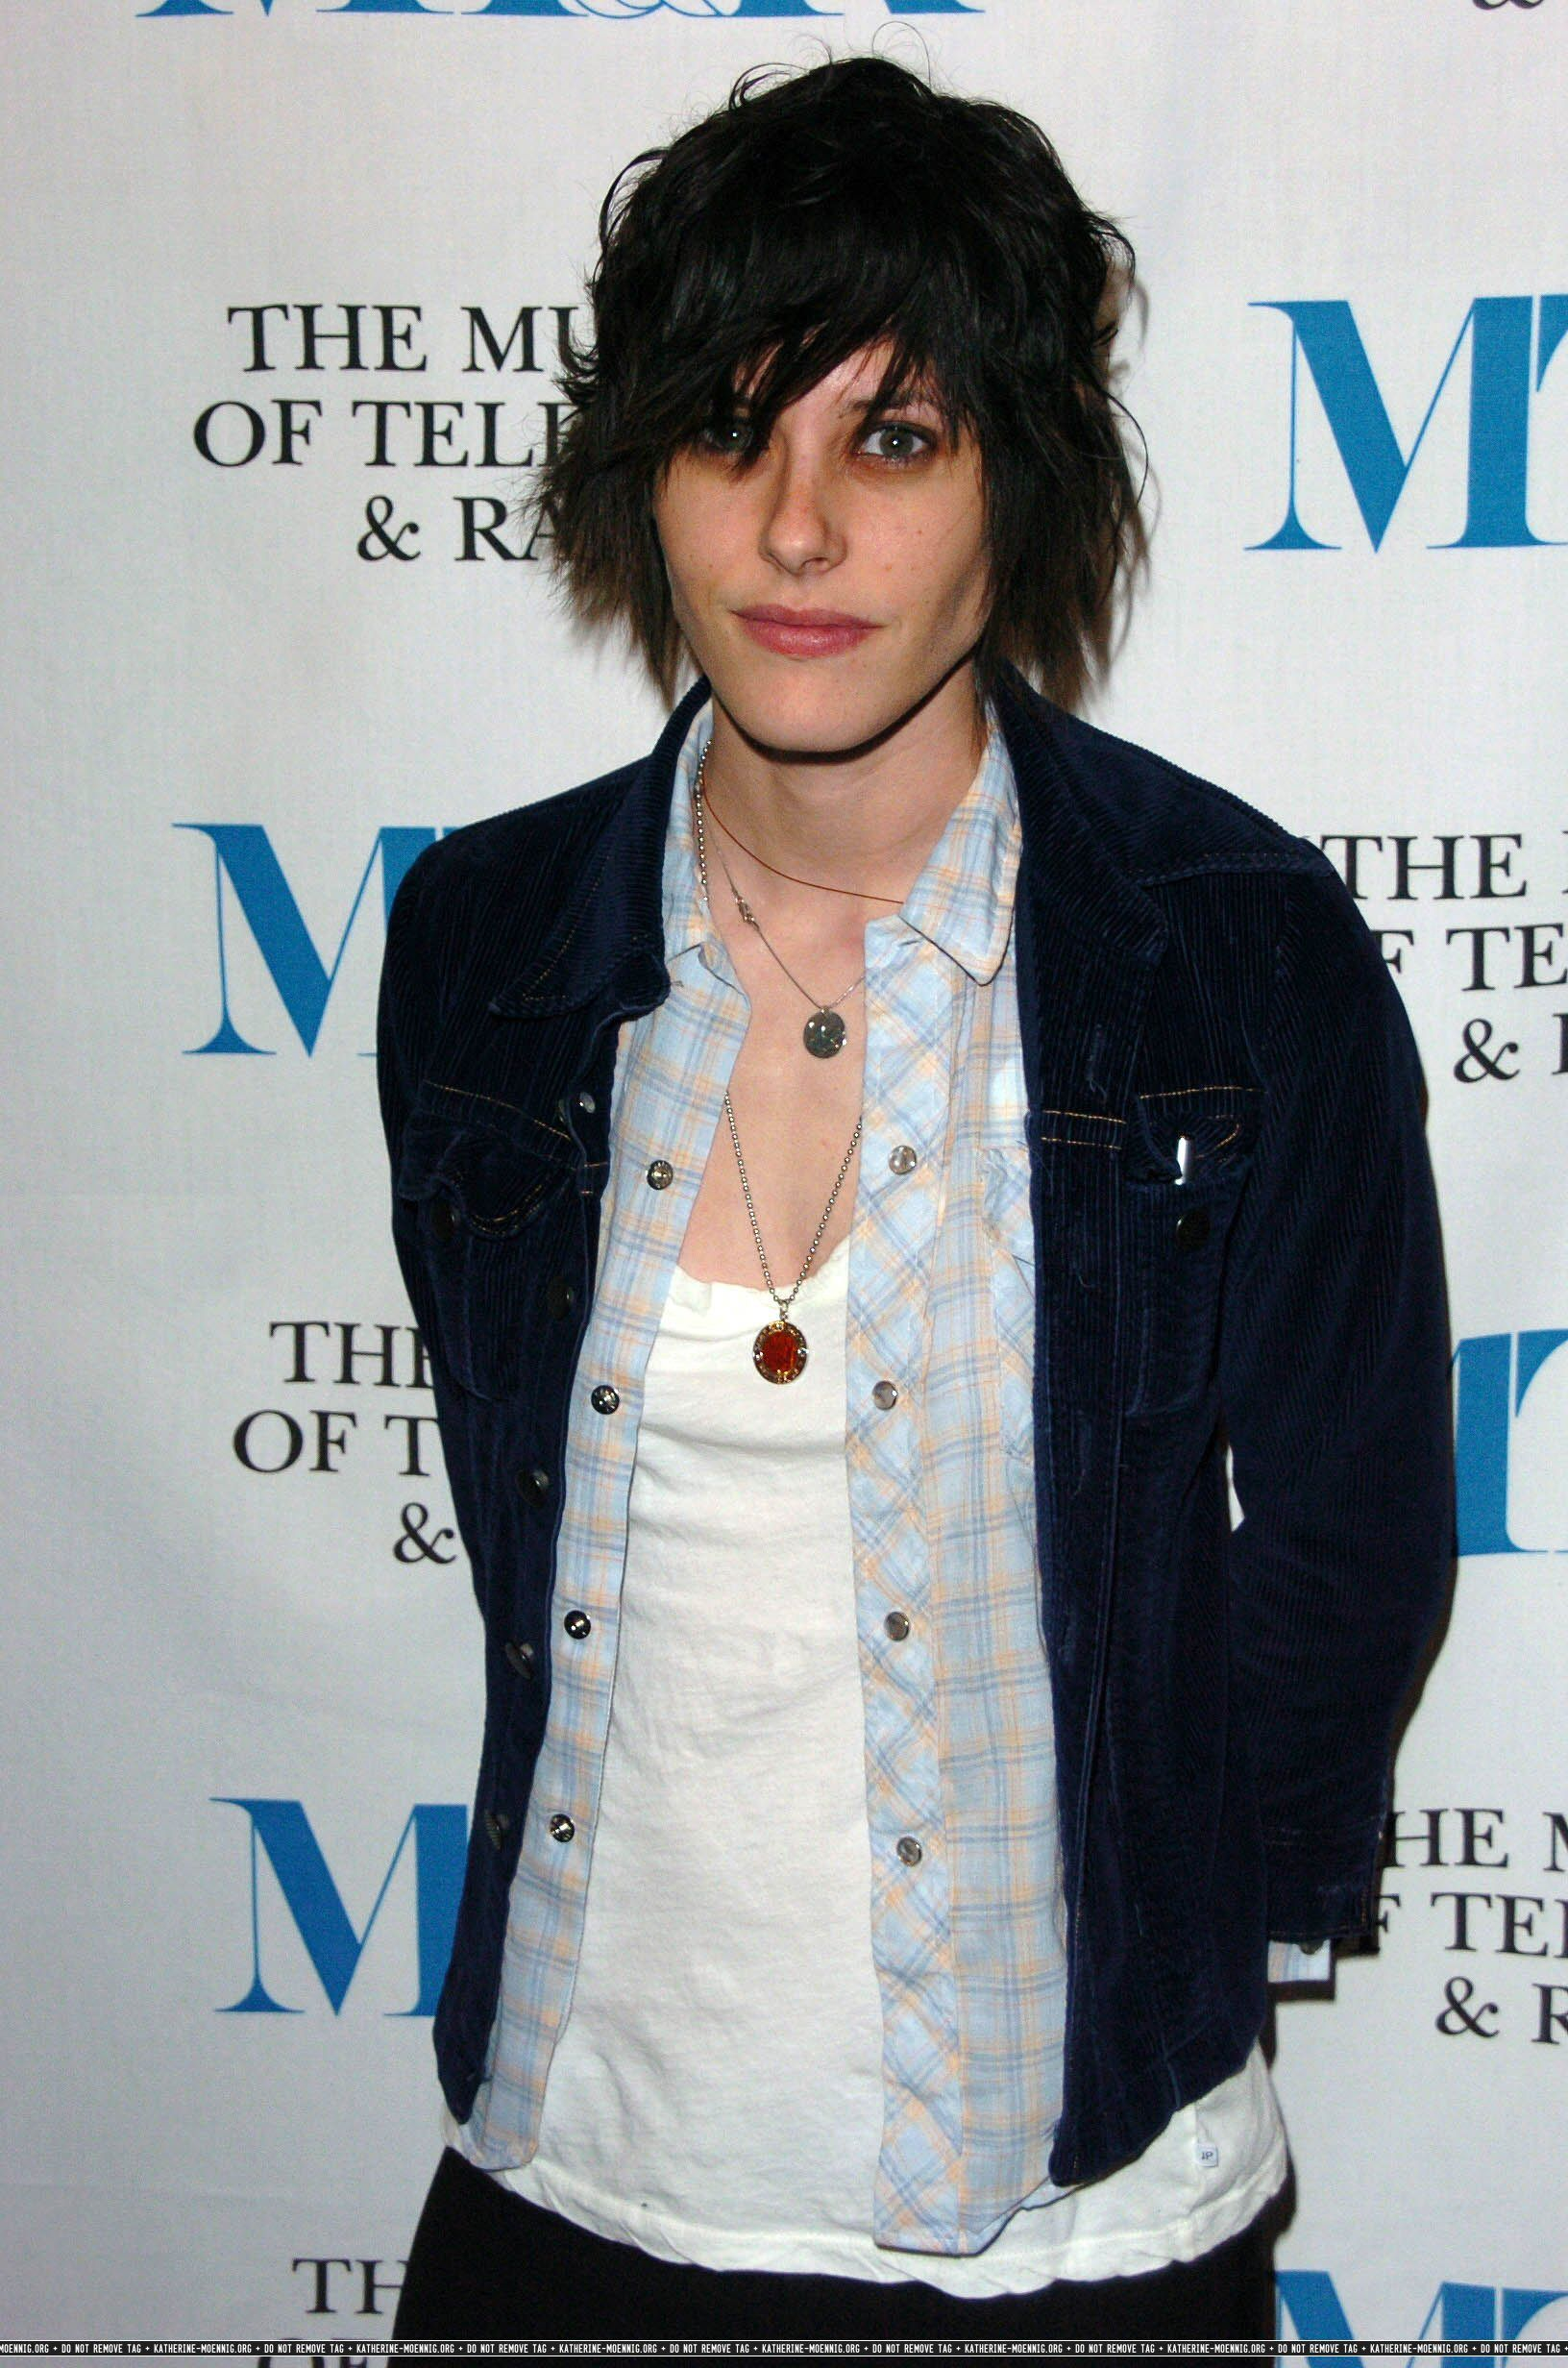 katherine moennig birthdaykatherine moennig личная жизнь, katherine moennig vk, katherine moennig wiki, katherine moennig height, katherine moennig gif, katherine moennig ellen, katherine moennig music, katherine moennig birthday, katherine moennig height and weight, katherine moennig ruby rose, katherine moennig films, katherine moennig tattoo, katherine moennig filmography, katherine moennig instagram, katherine moennig interview, katherine moennig hairstyle, katherine moennig wallpaper, katherine moennig twitter, katherine moennig tumblr, katherine moennig csi miami